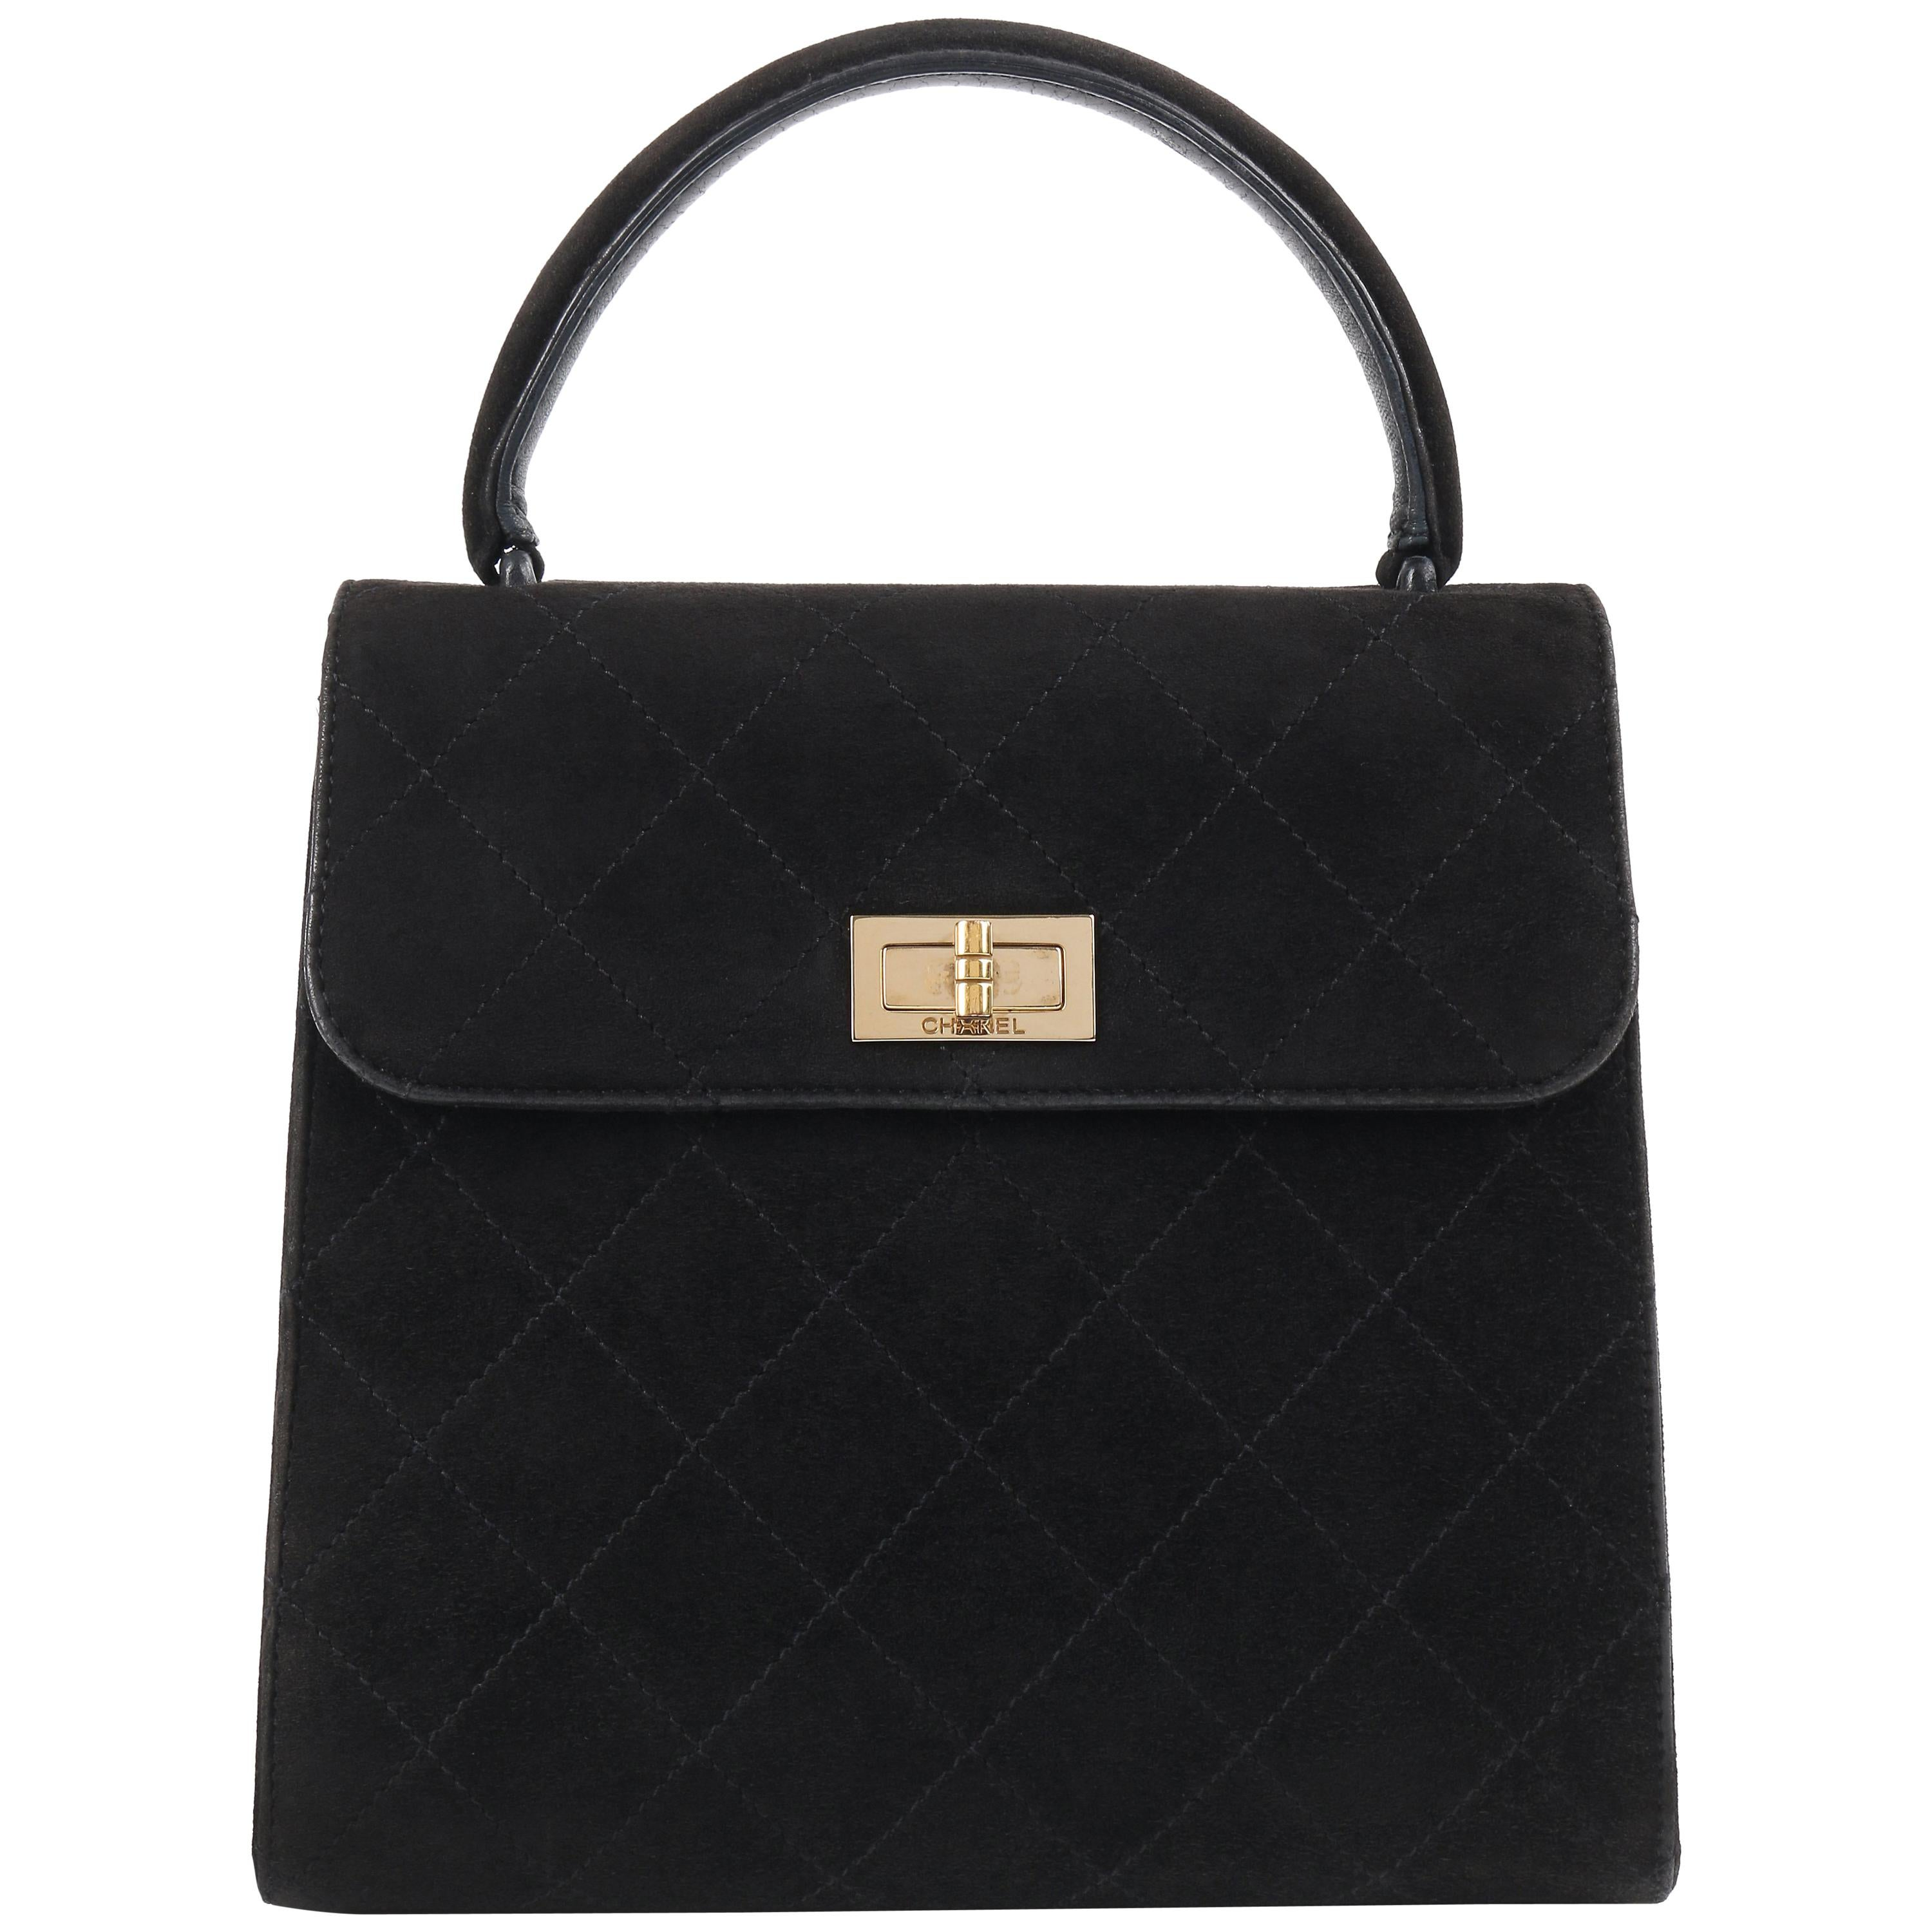 0231b6fcf3f1 E-Collectique Luxury Resale Top Handle Bags - 1stdibs